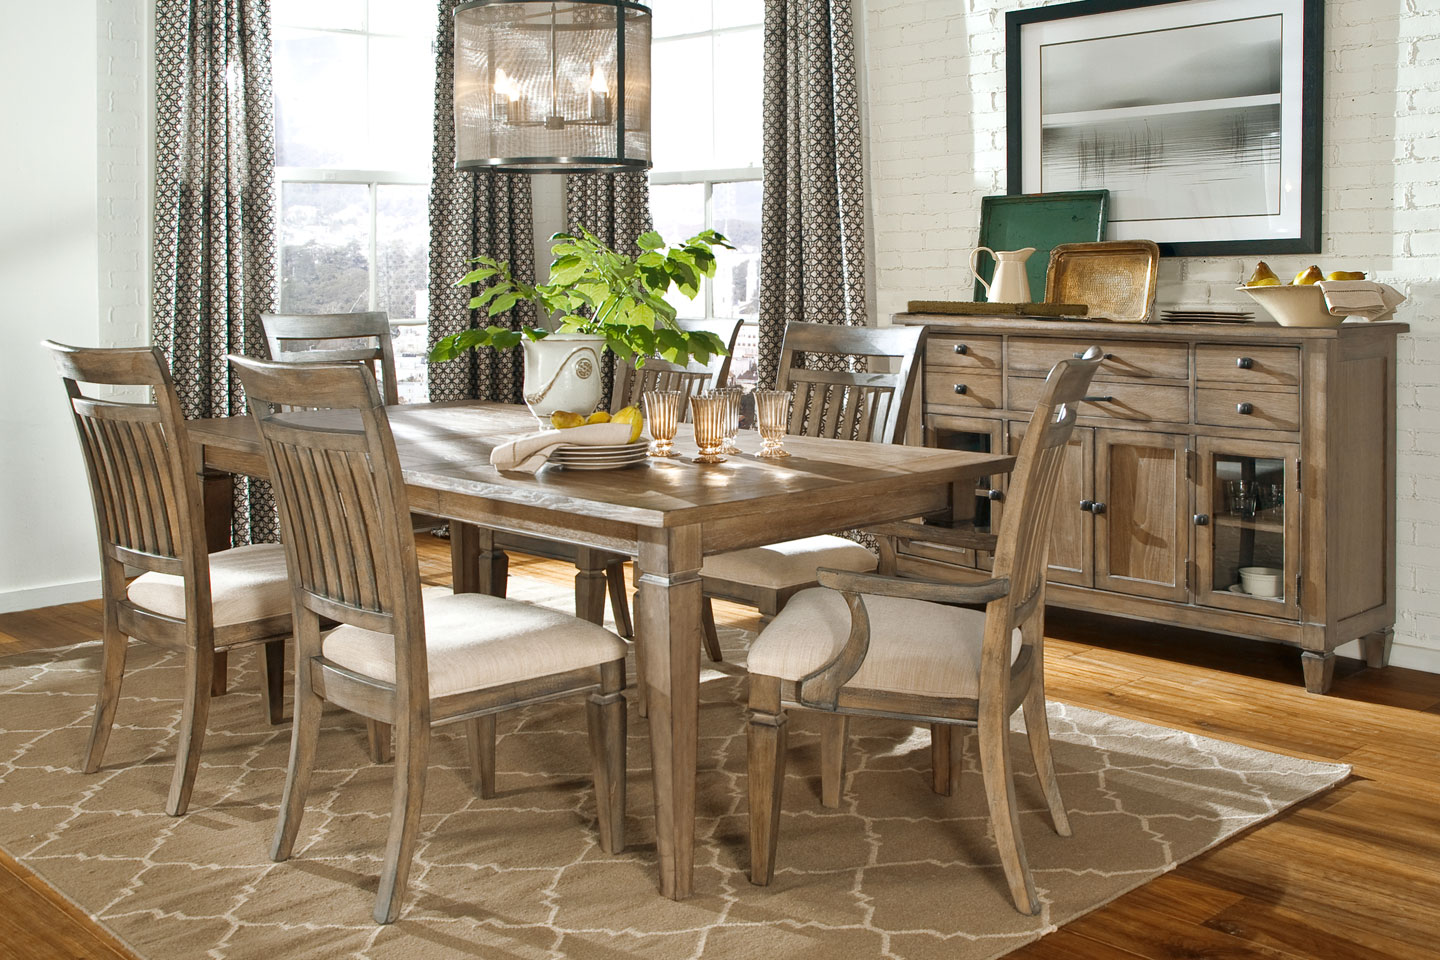 Great Rustic Formal Dining Room Set 1440 x 960 · 356 kB · jpeg